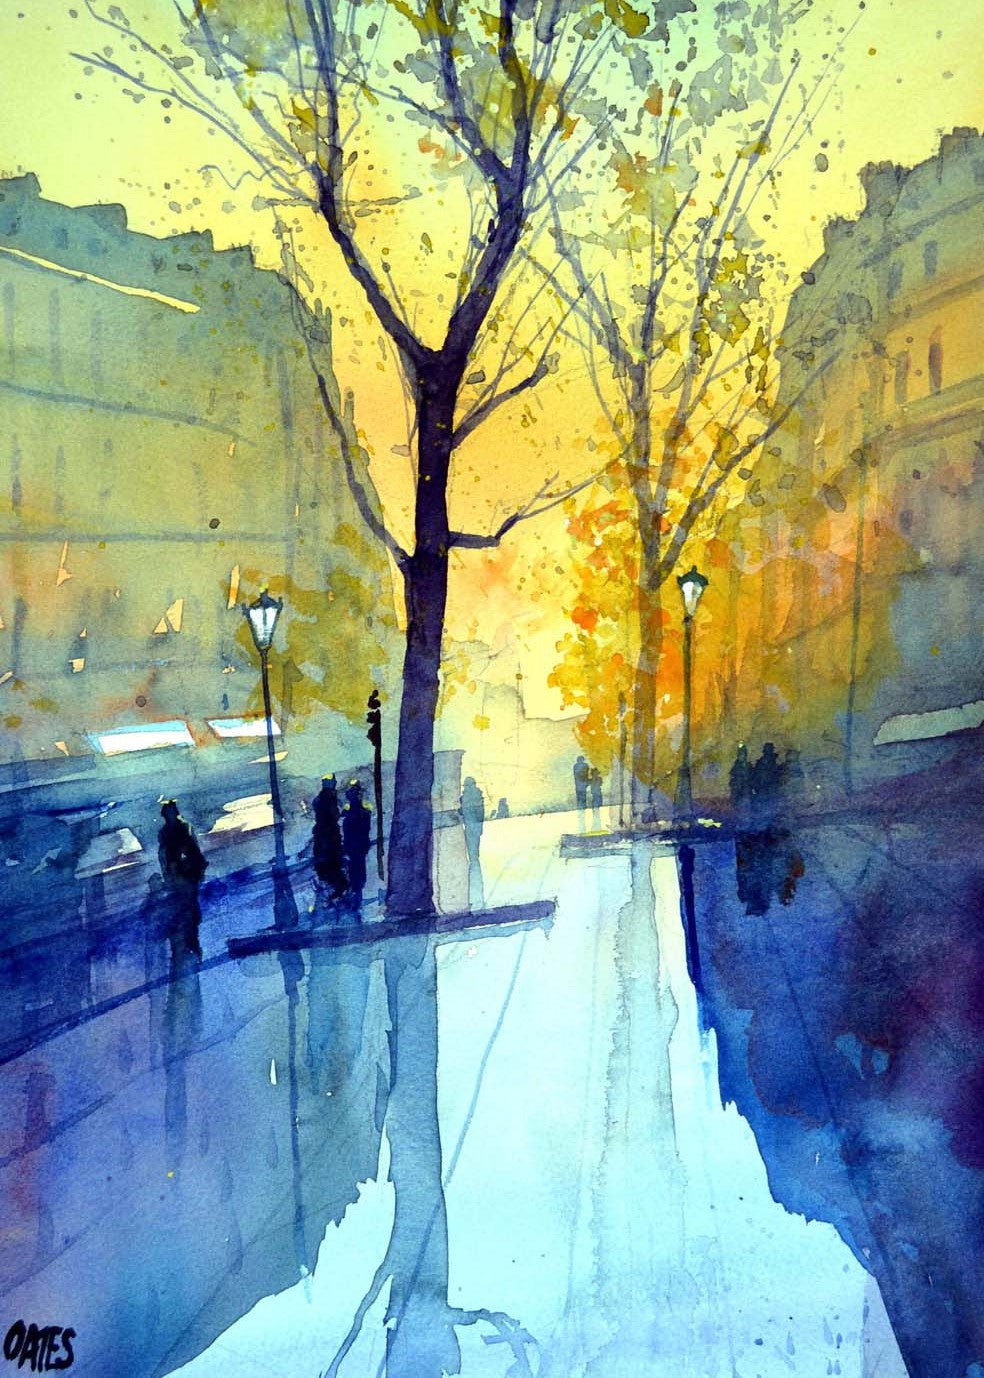 Paris Rain 1 Rectangular Print.